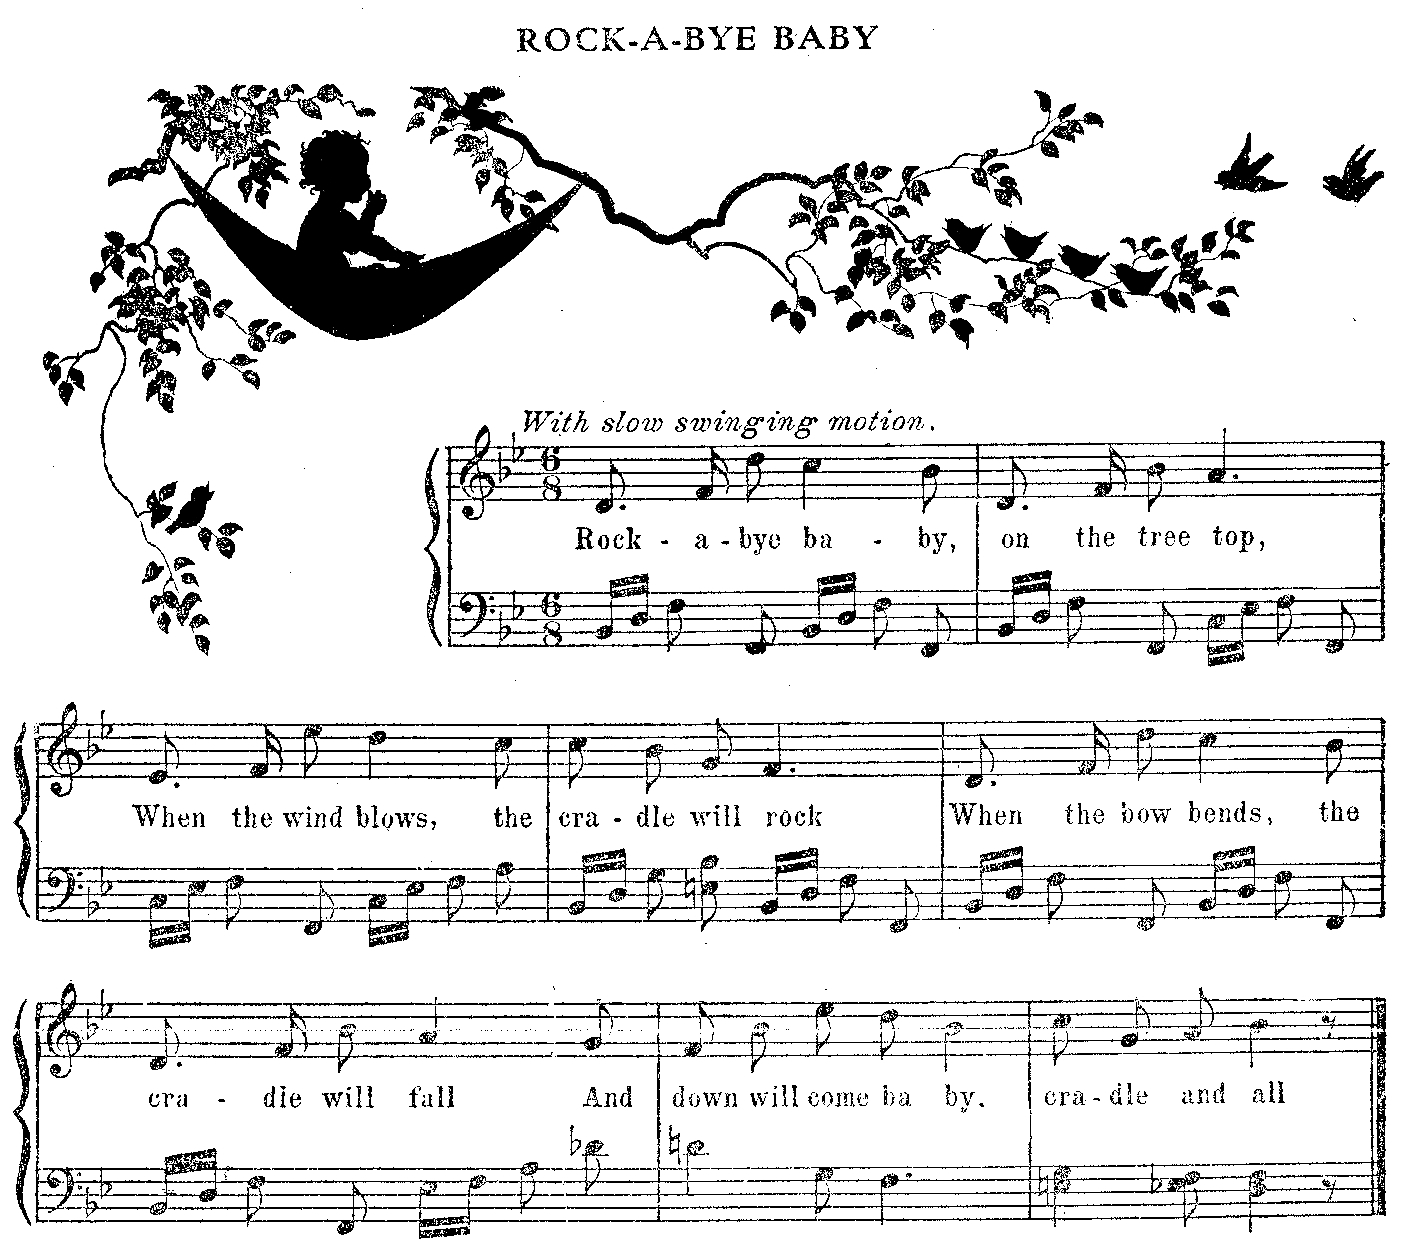 Free sheet music clipart banner transparent download Sheet Music Clipart - Cliparts and Others Art Inspiration banner transparent download